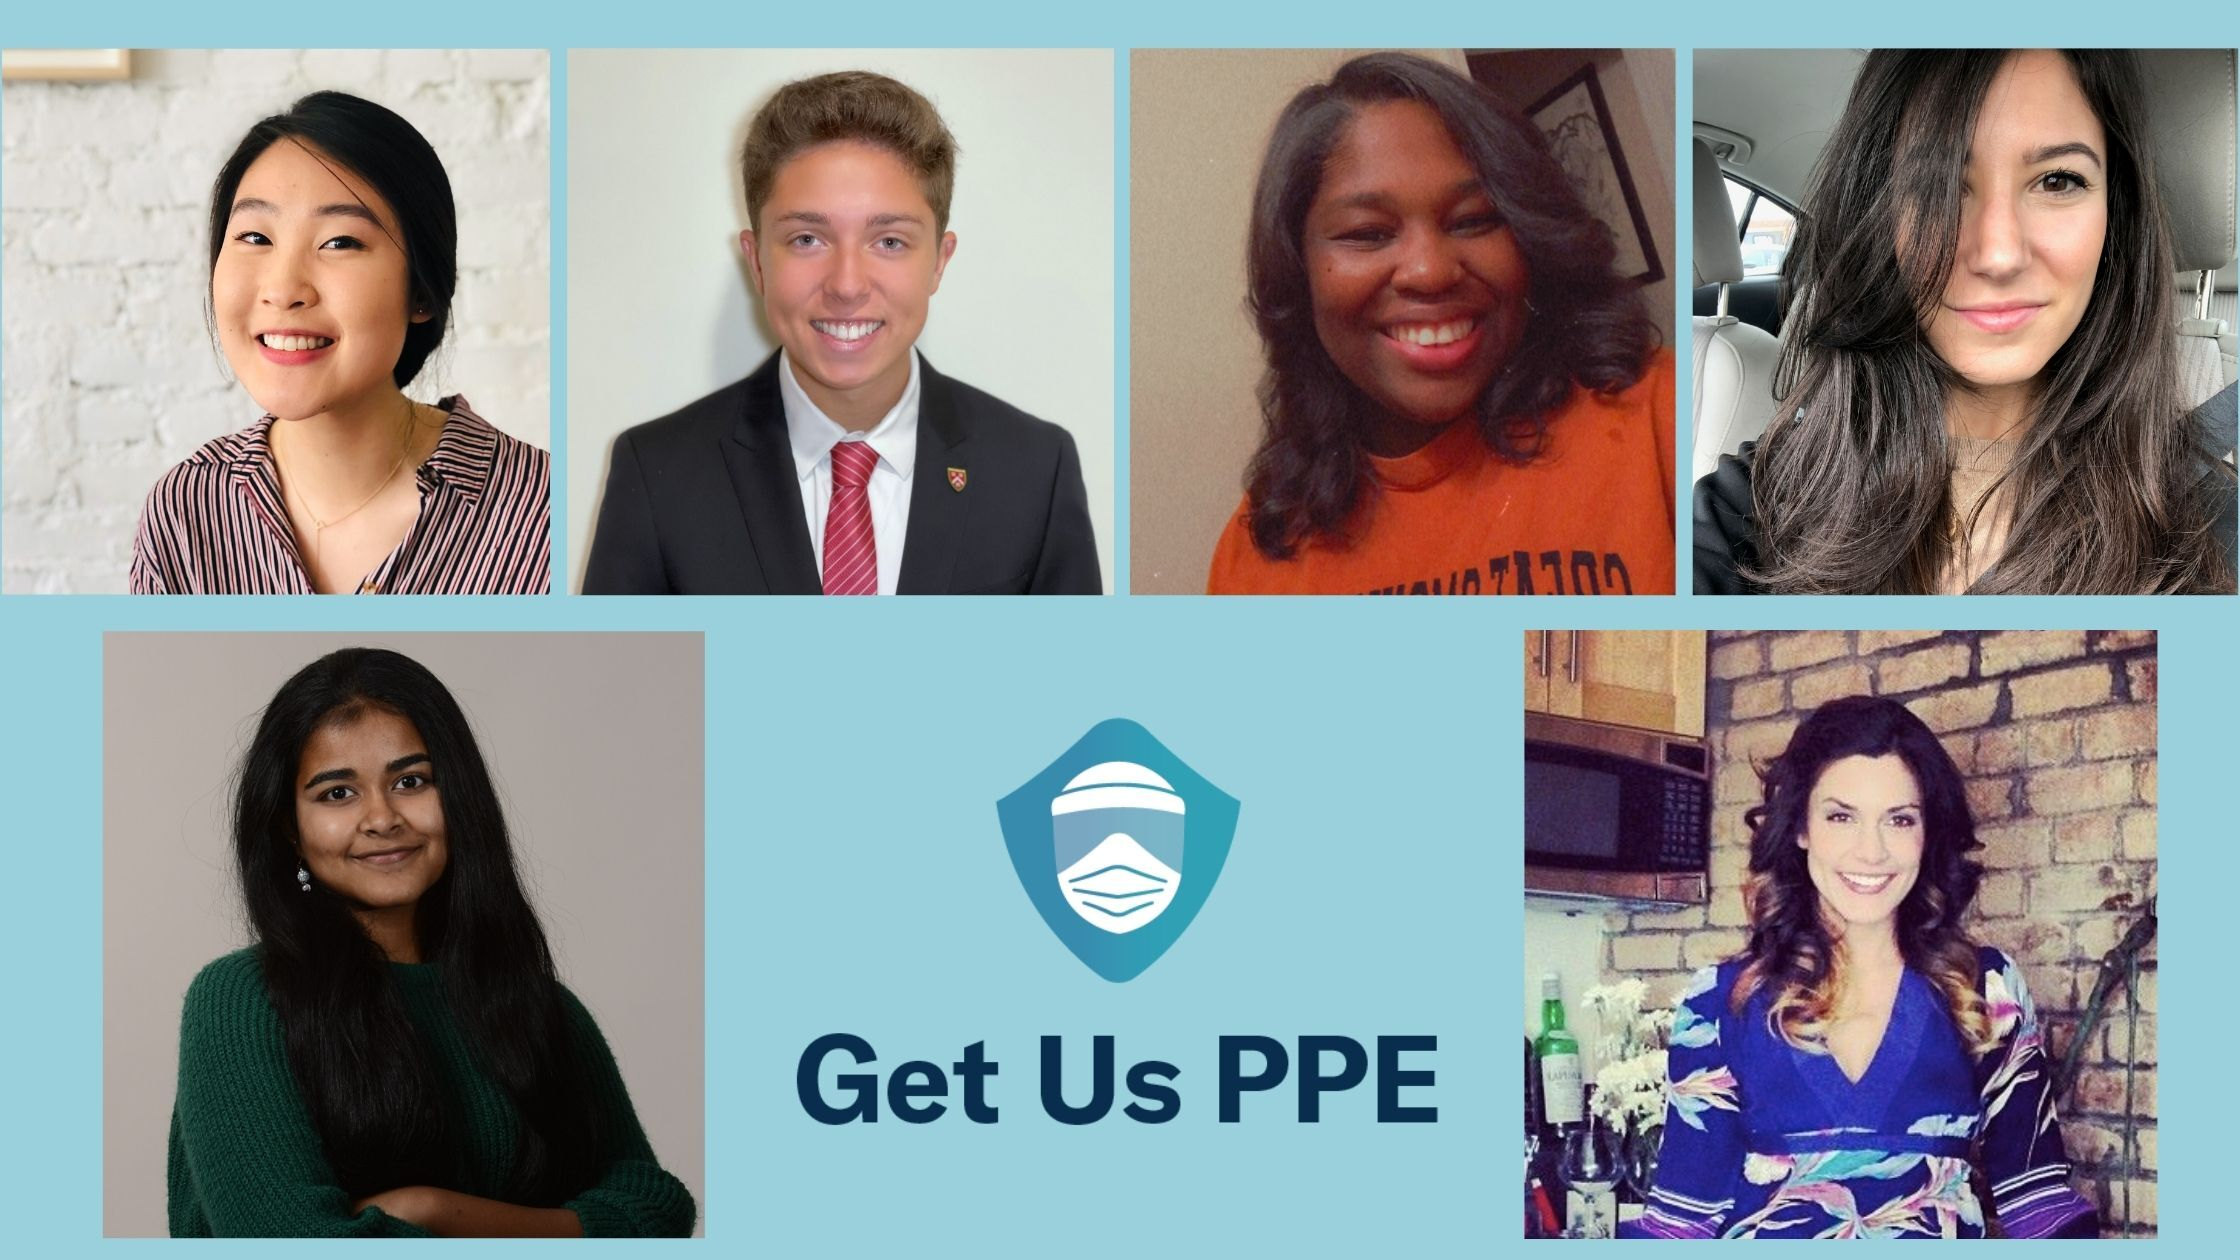 Photo Collage of Get Us PPE Volunteers